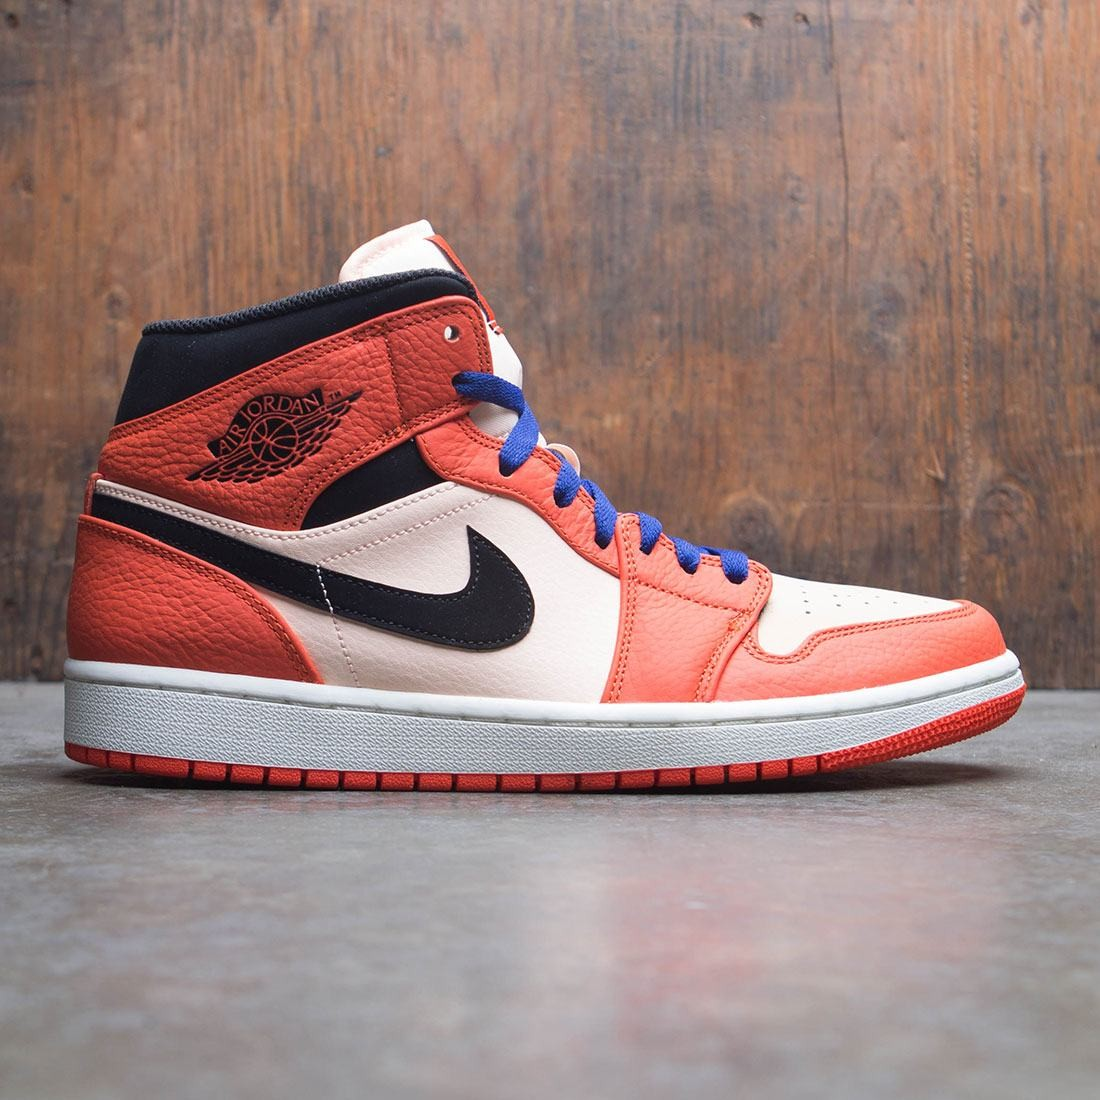 bab5d120b3b1 jordan men air jordan 1 mid se team orange black crimson tint